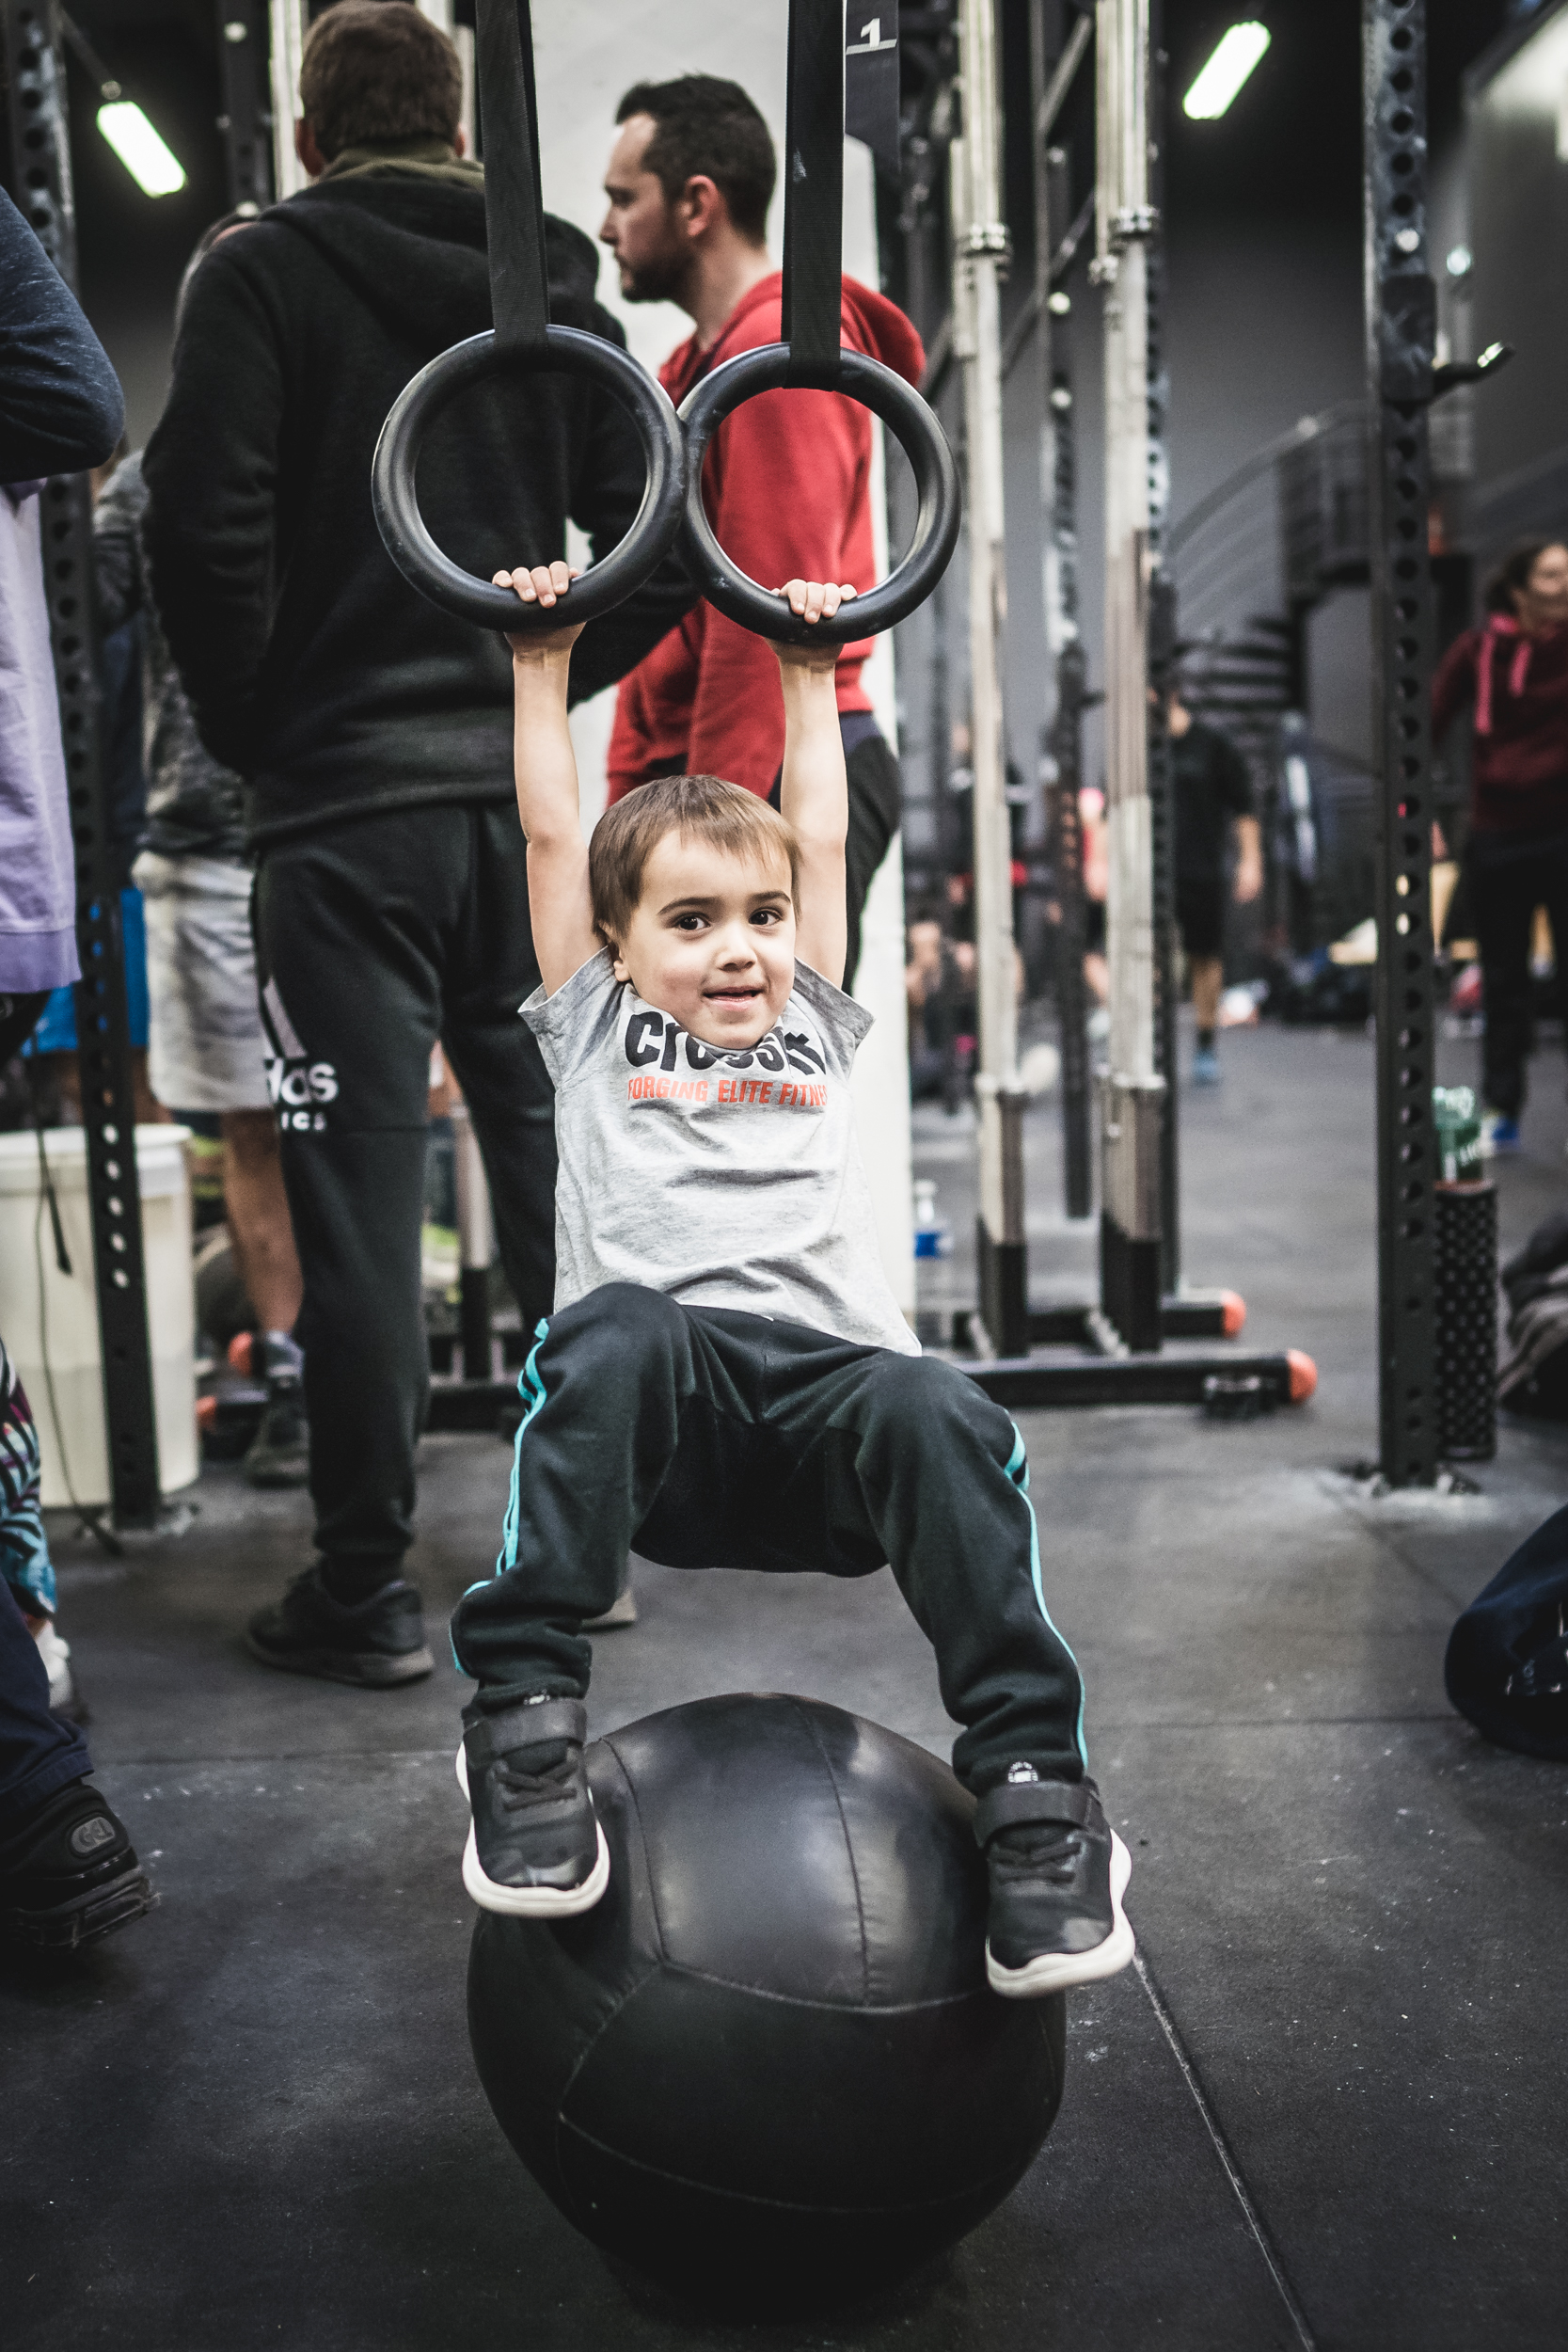 Crossfit Gavroche_Christmas Throwdown 2018_ Florian Leger_ N°-44.jpg